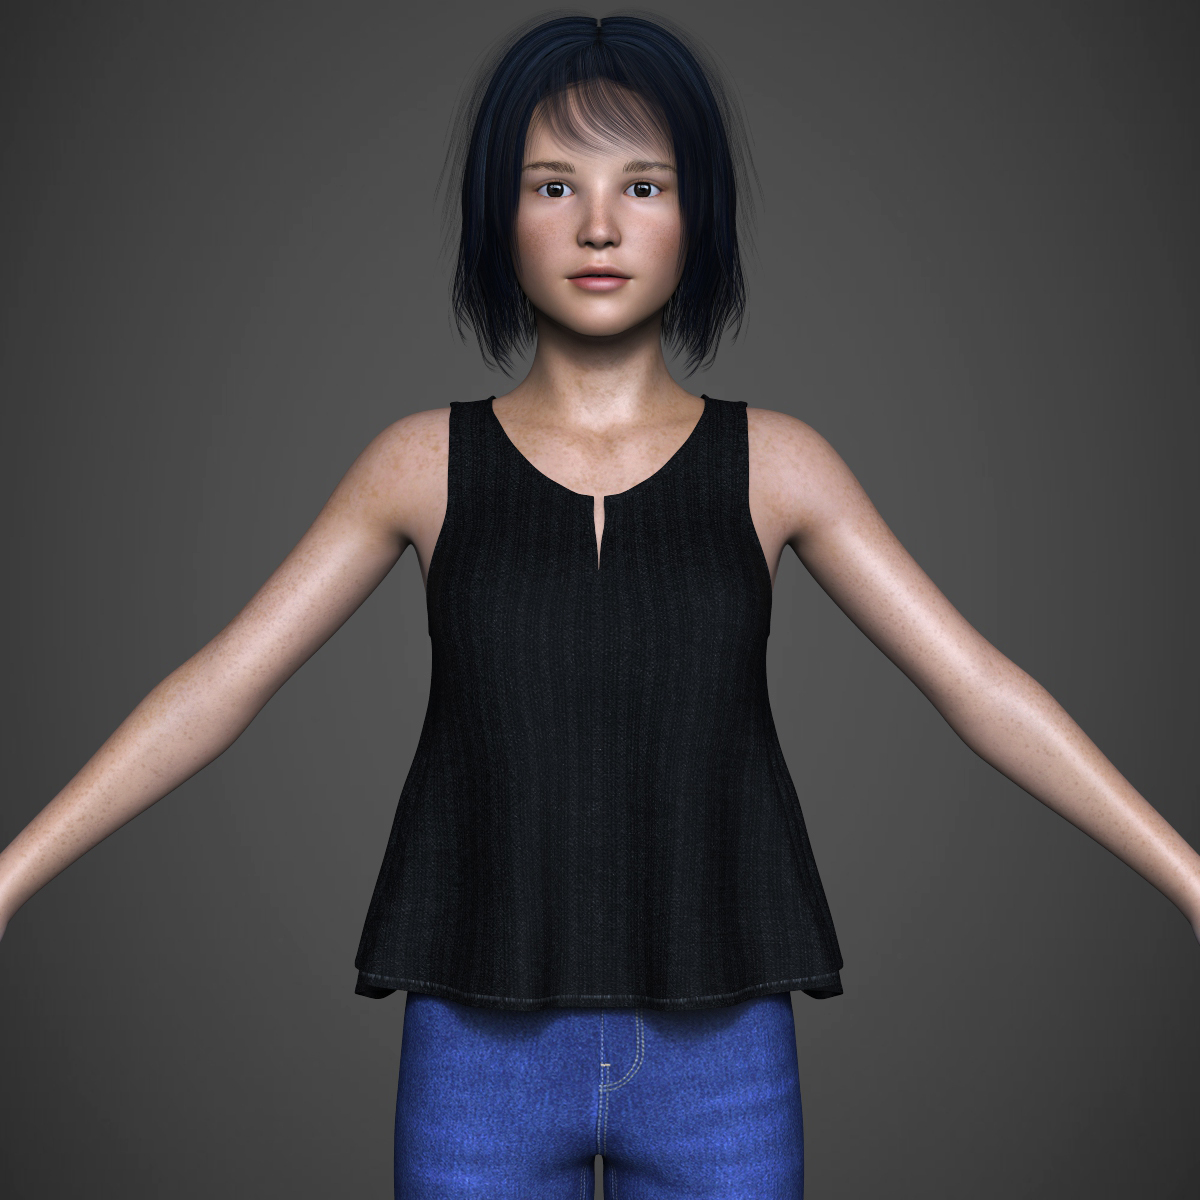 beautiful teen girl 3d model max fbx c4d ma mb texture obj 252307